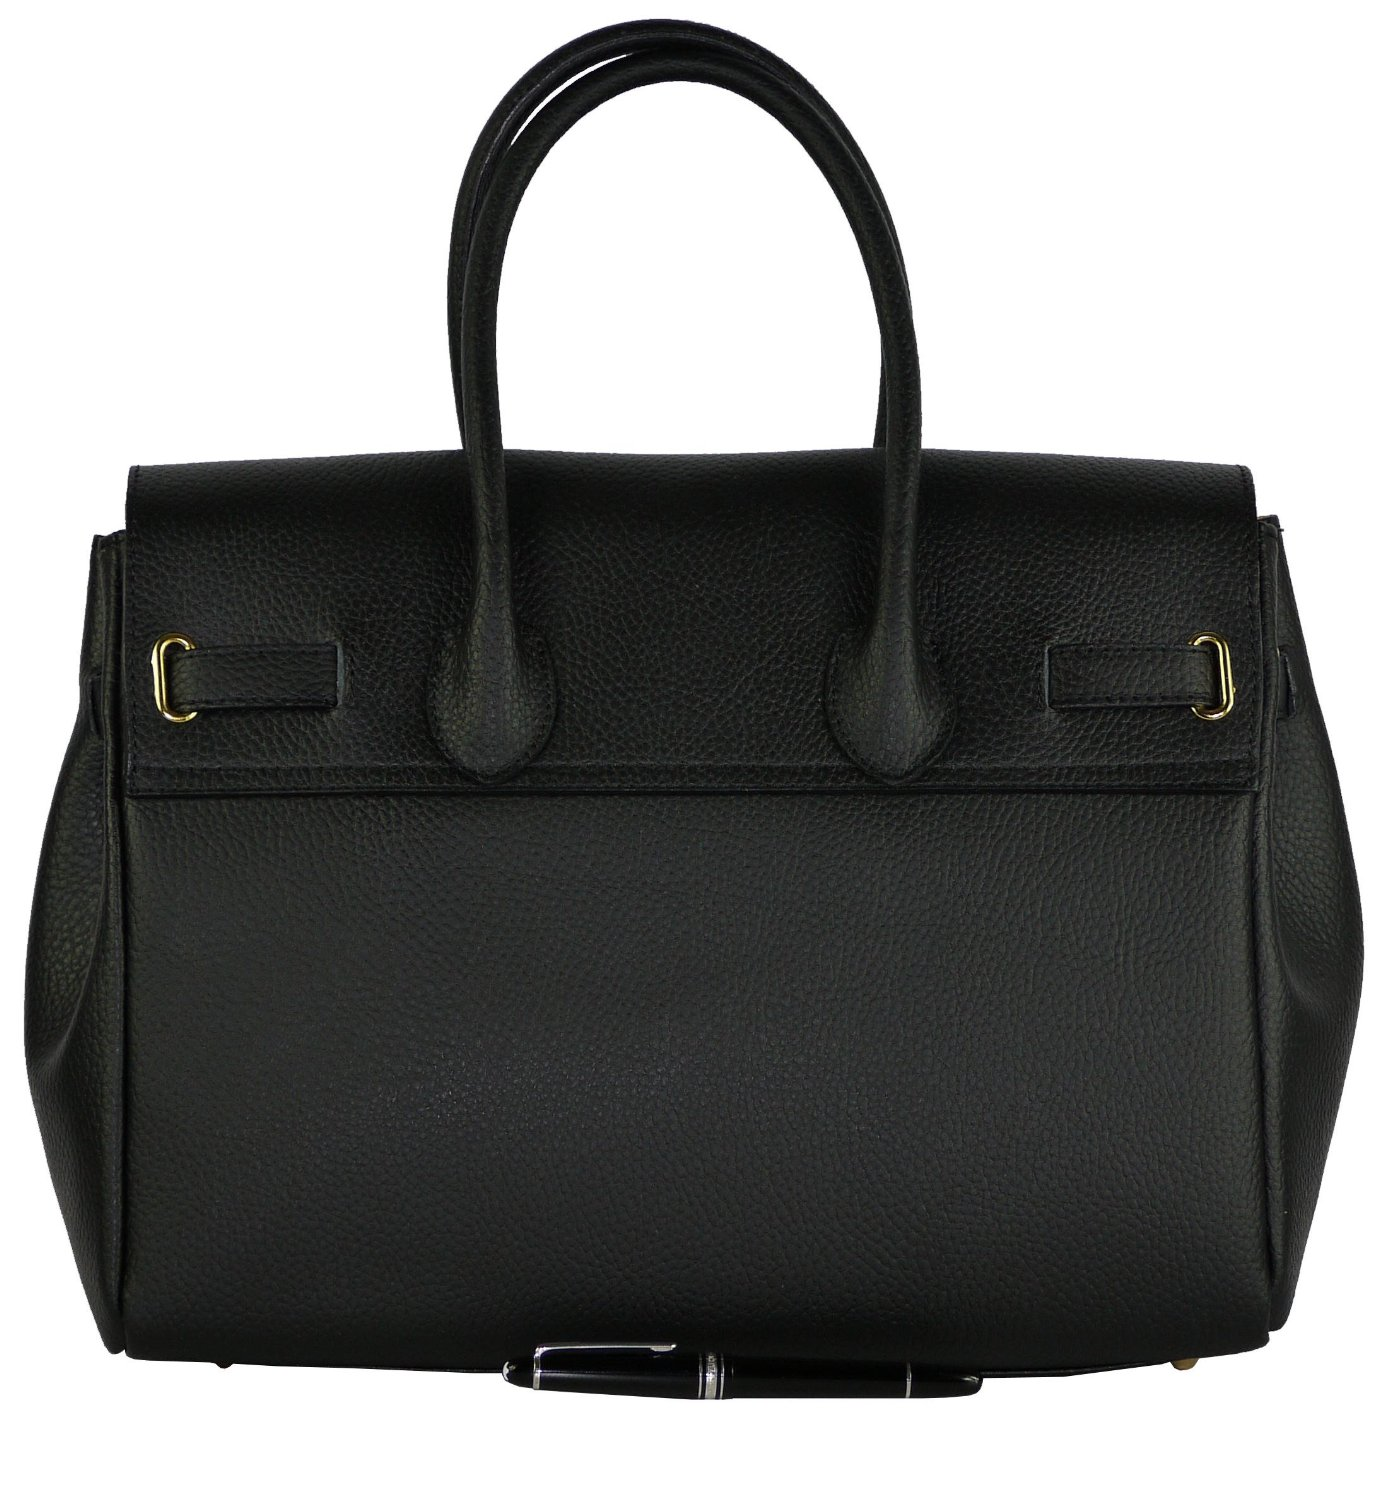 http://www.conmigolondon.co.uk/ekmps/shops/conmigo/images/1a.-real-italian-leather-brealleather-0011-big-black-real-leather-bag-made-in-florence-italy.-%5B3%5D-2405-p.jpg